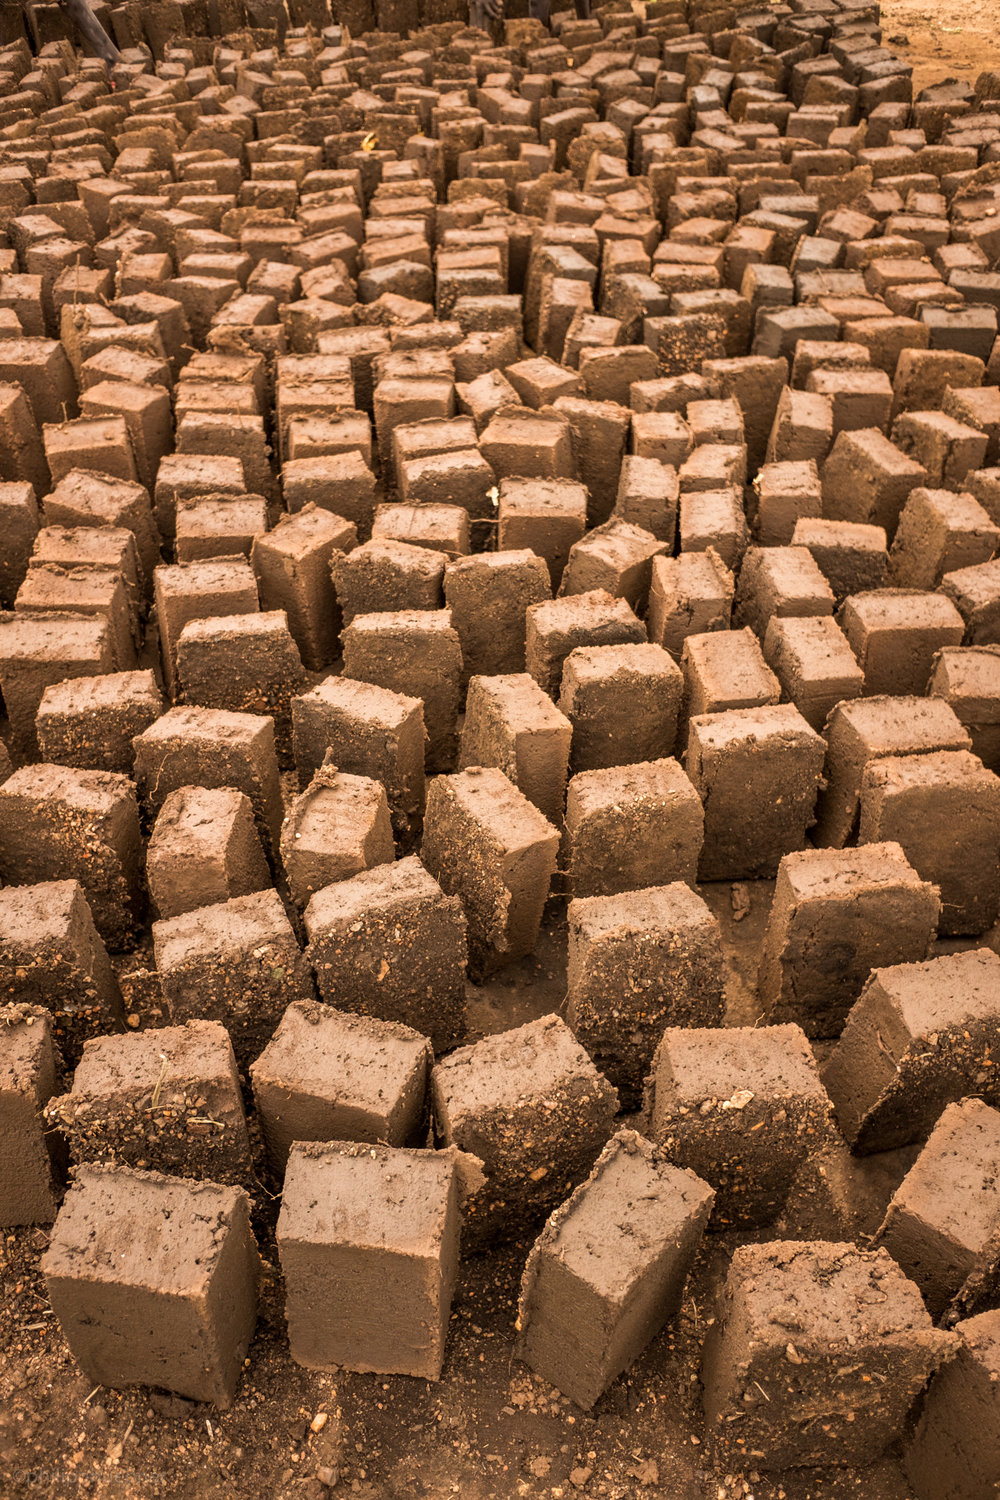 drying mudbricks